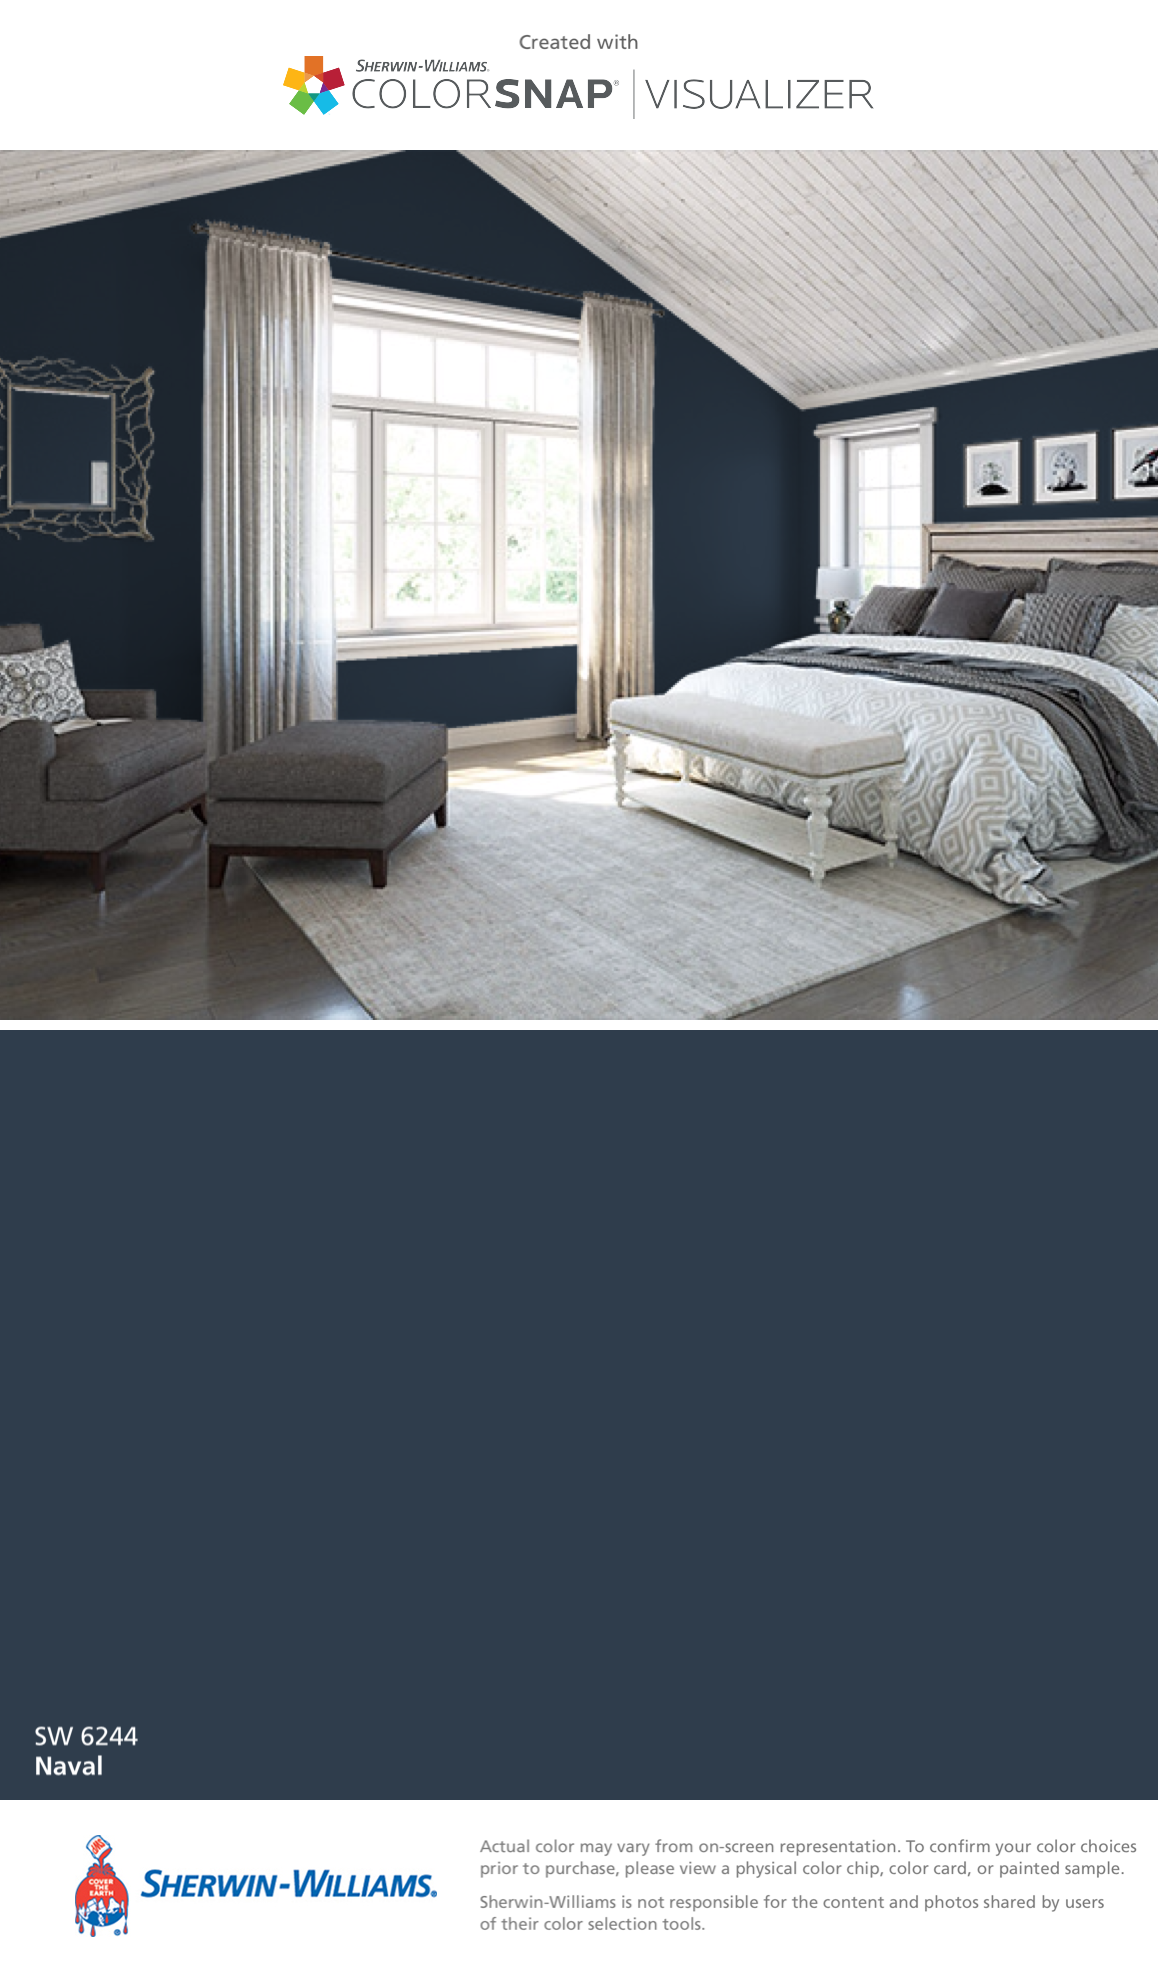 I Found This Color With Colorsnap Visualizer For Iphone By Sherwin Williams Naval Sw 6244